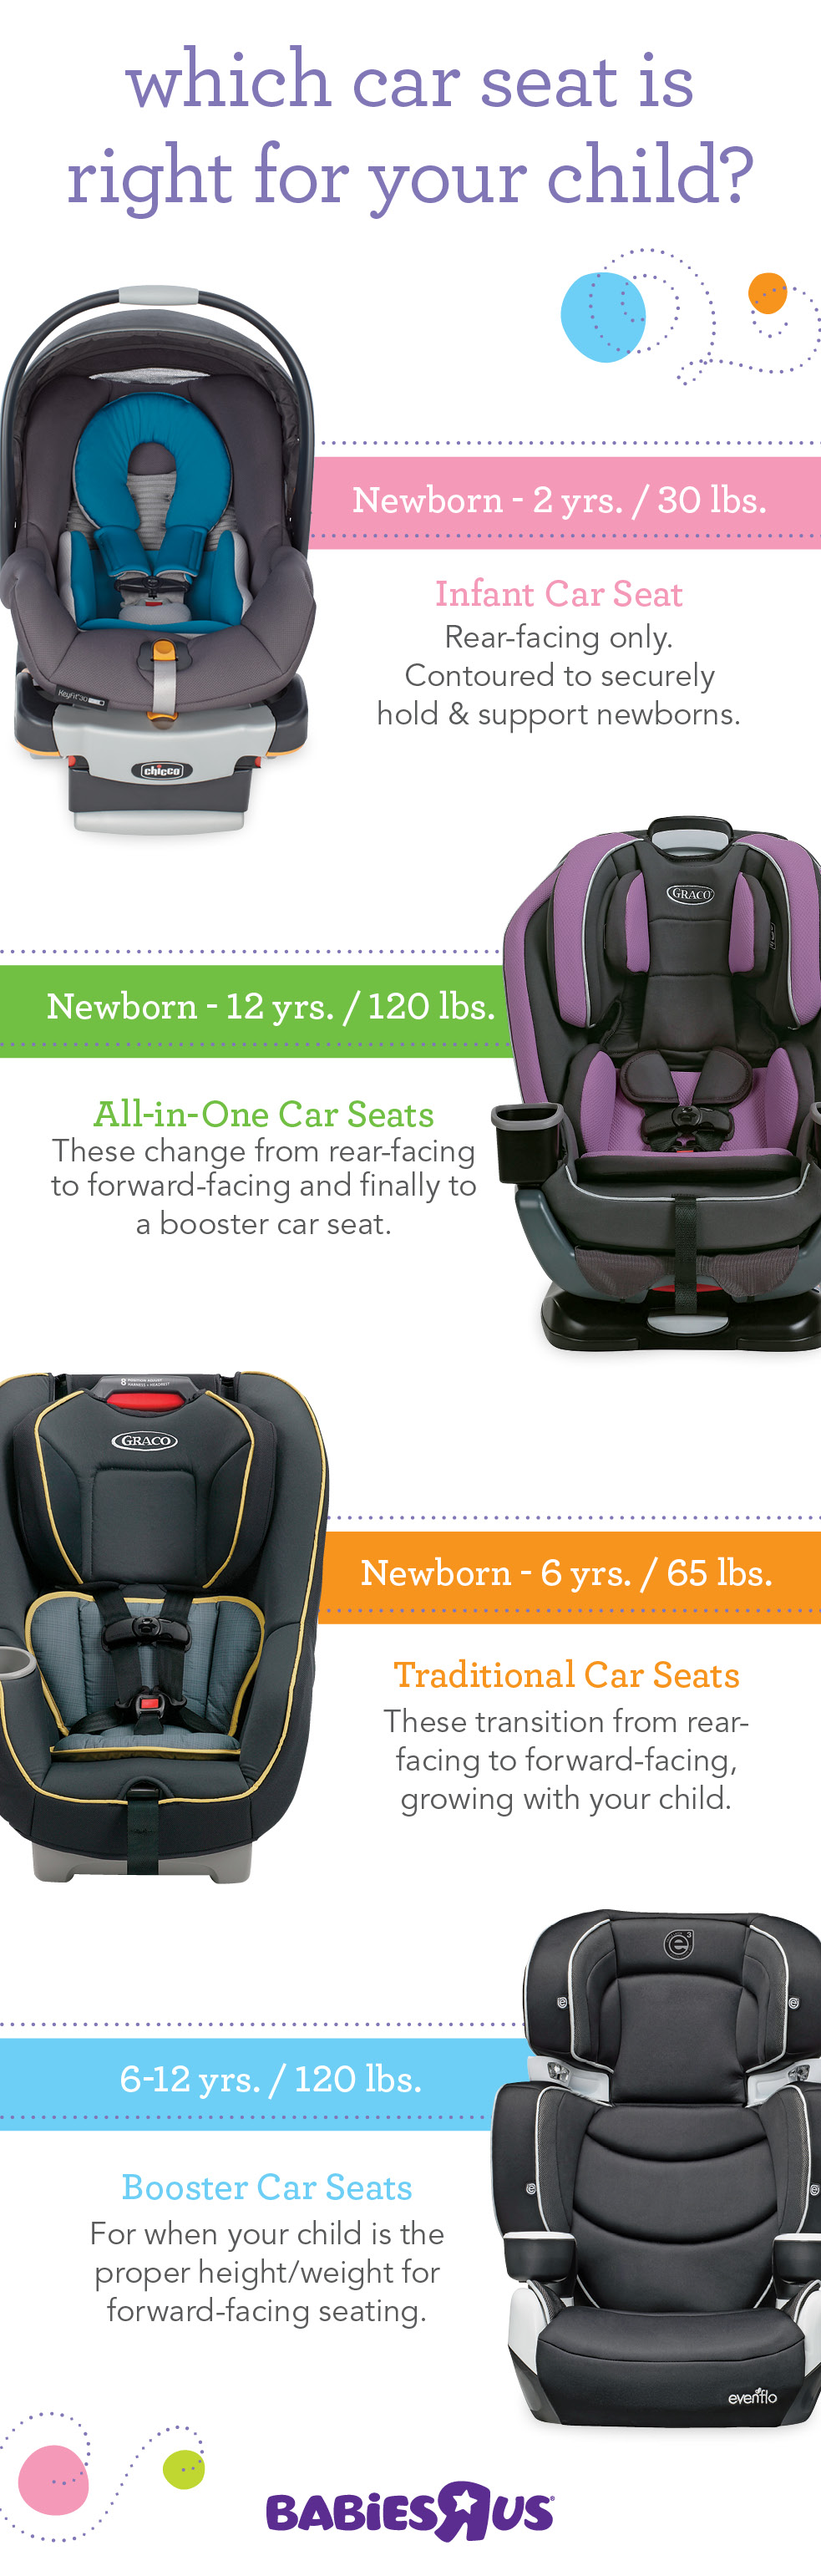 Appropriate car seats or booster seats for different age and size groups Pins At Random Pinterest